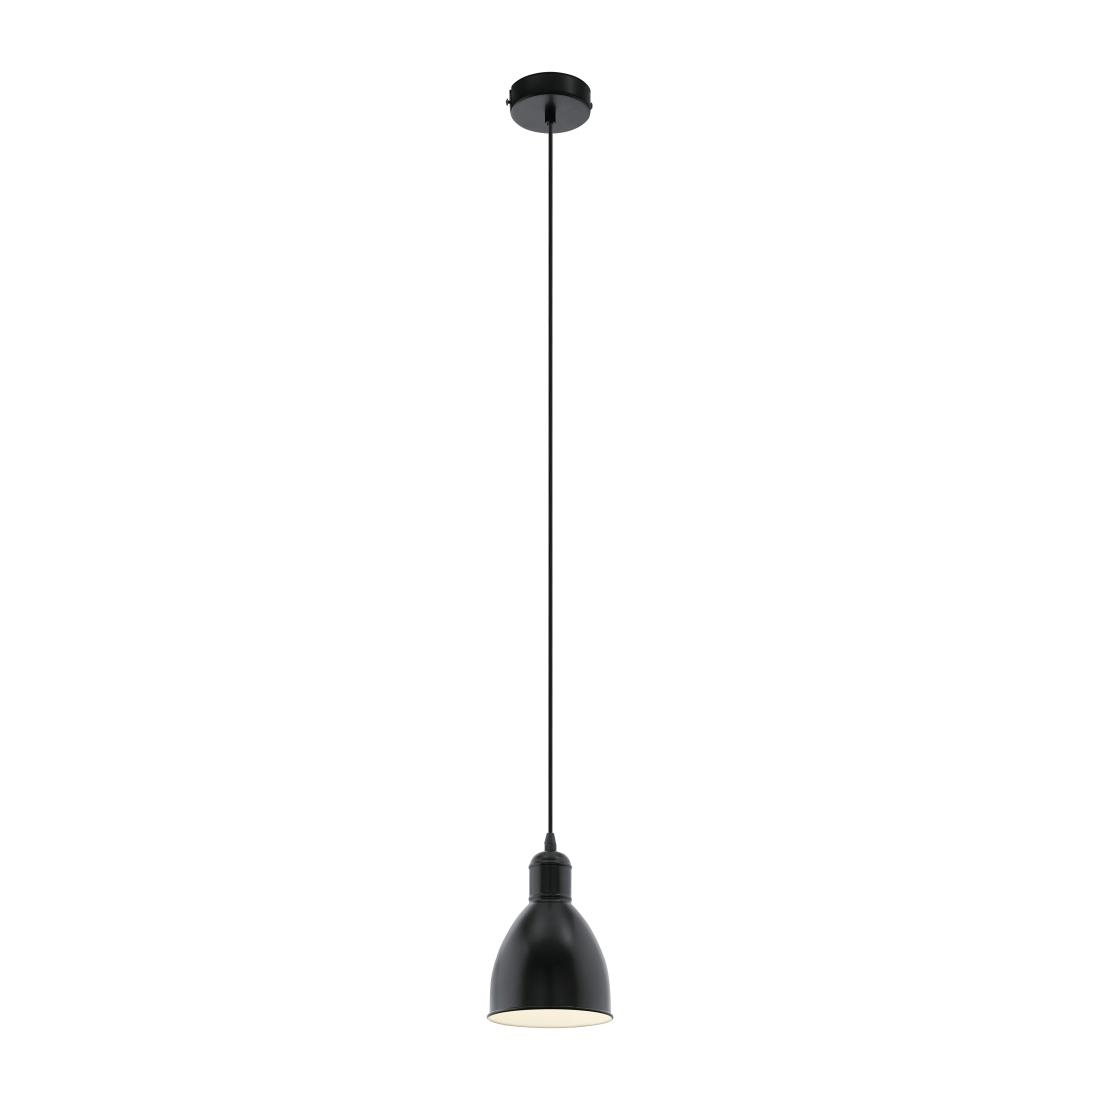 Image of Eglo Priddy Steel Shade Pendant